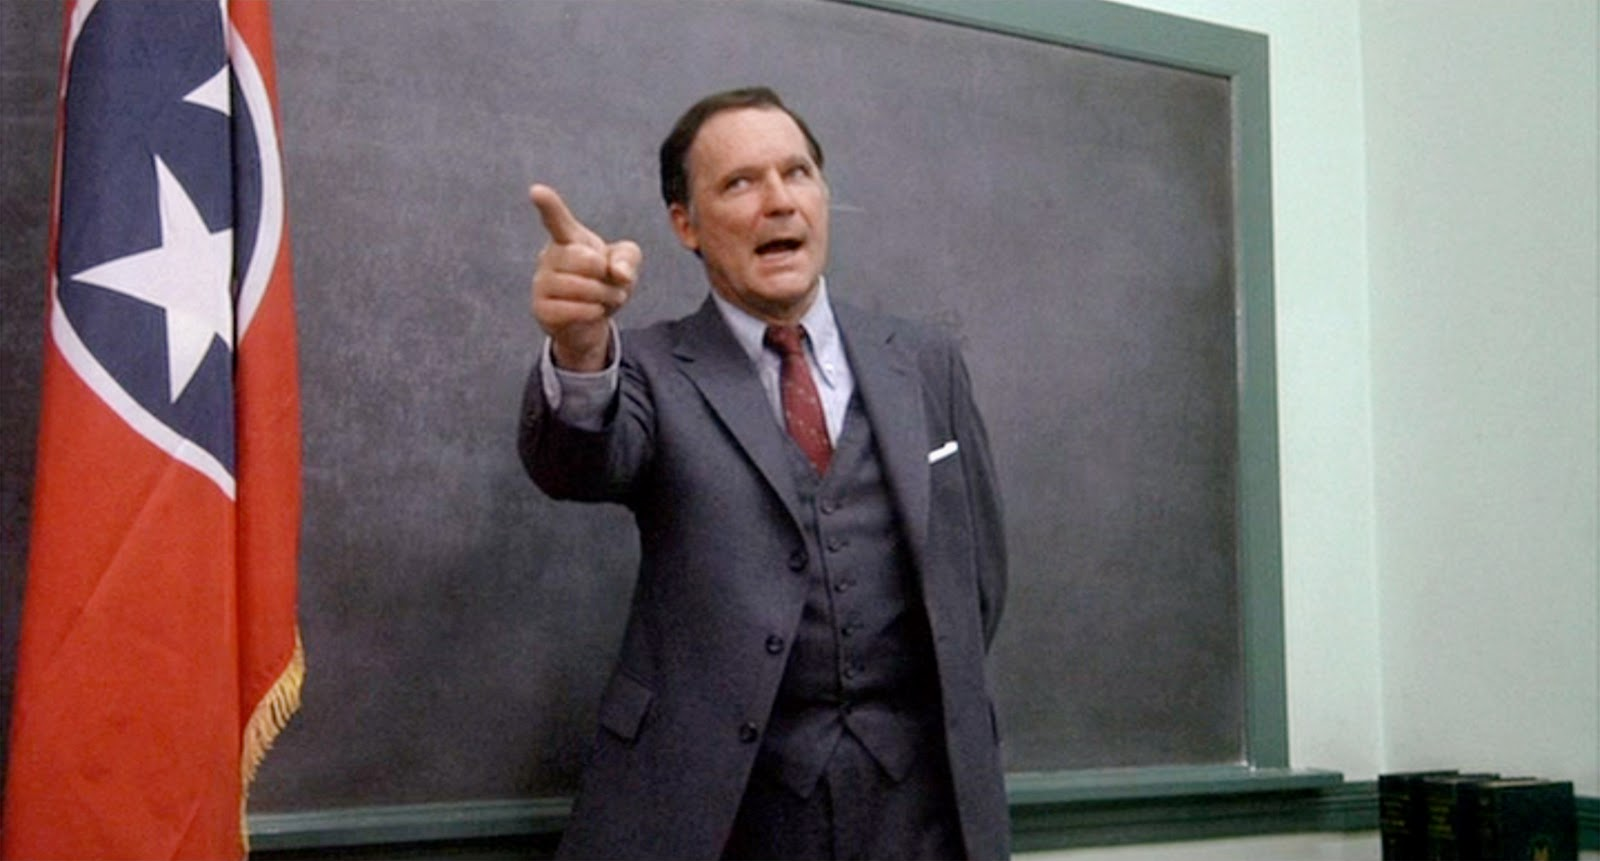 Image of: Gif animal House Faber College Is In Tennessee In The Scene Where The Deltas Are Walking Out Of Student Court Hearing Dean Wormer Is Seen Making Threats Reddit Animal House Faber College Is In Tennessee In The Scene Where The